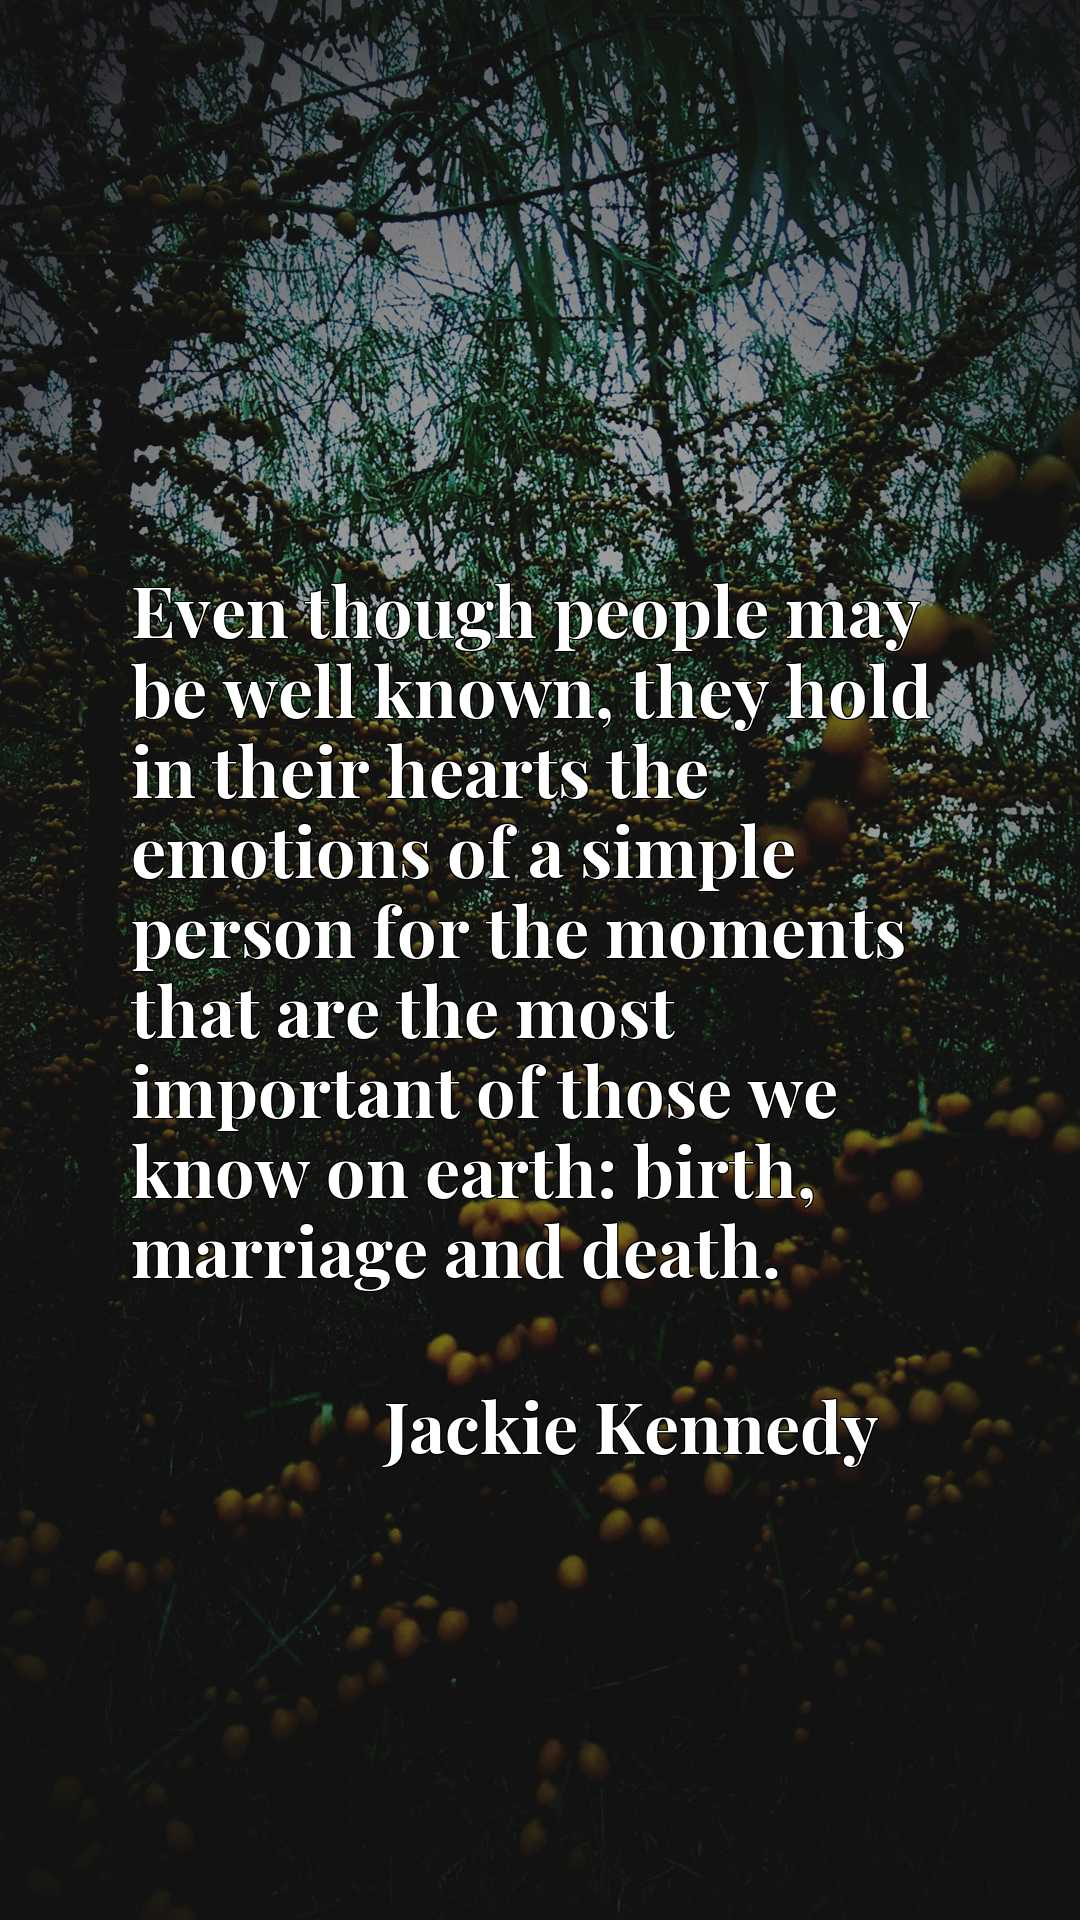 Even though people may be well known, they hold in their hearts the emotions of a simple person for the moments that are the most important of those we know on earth: birth, marriage and death.